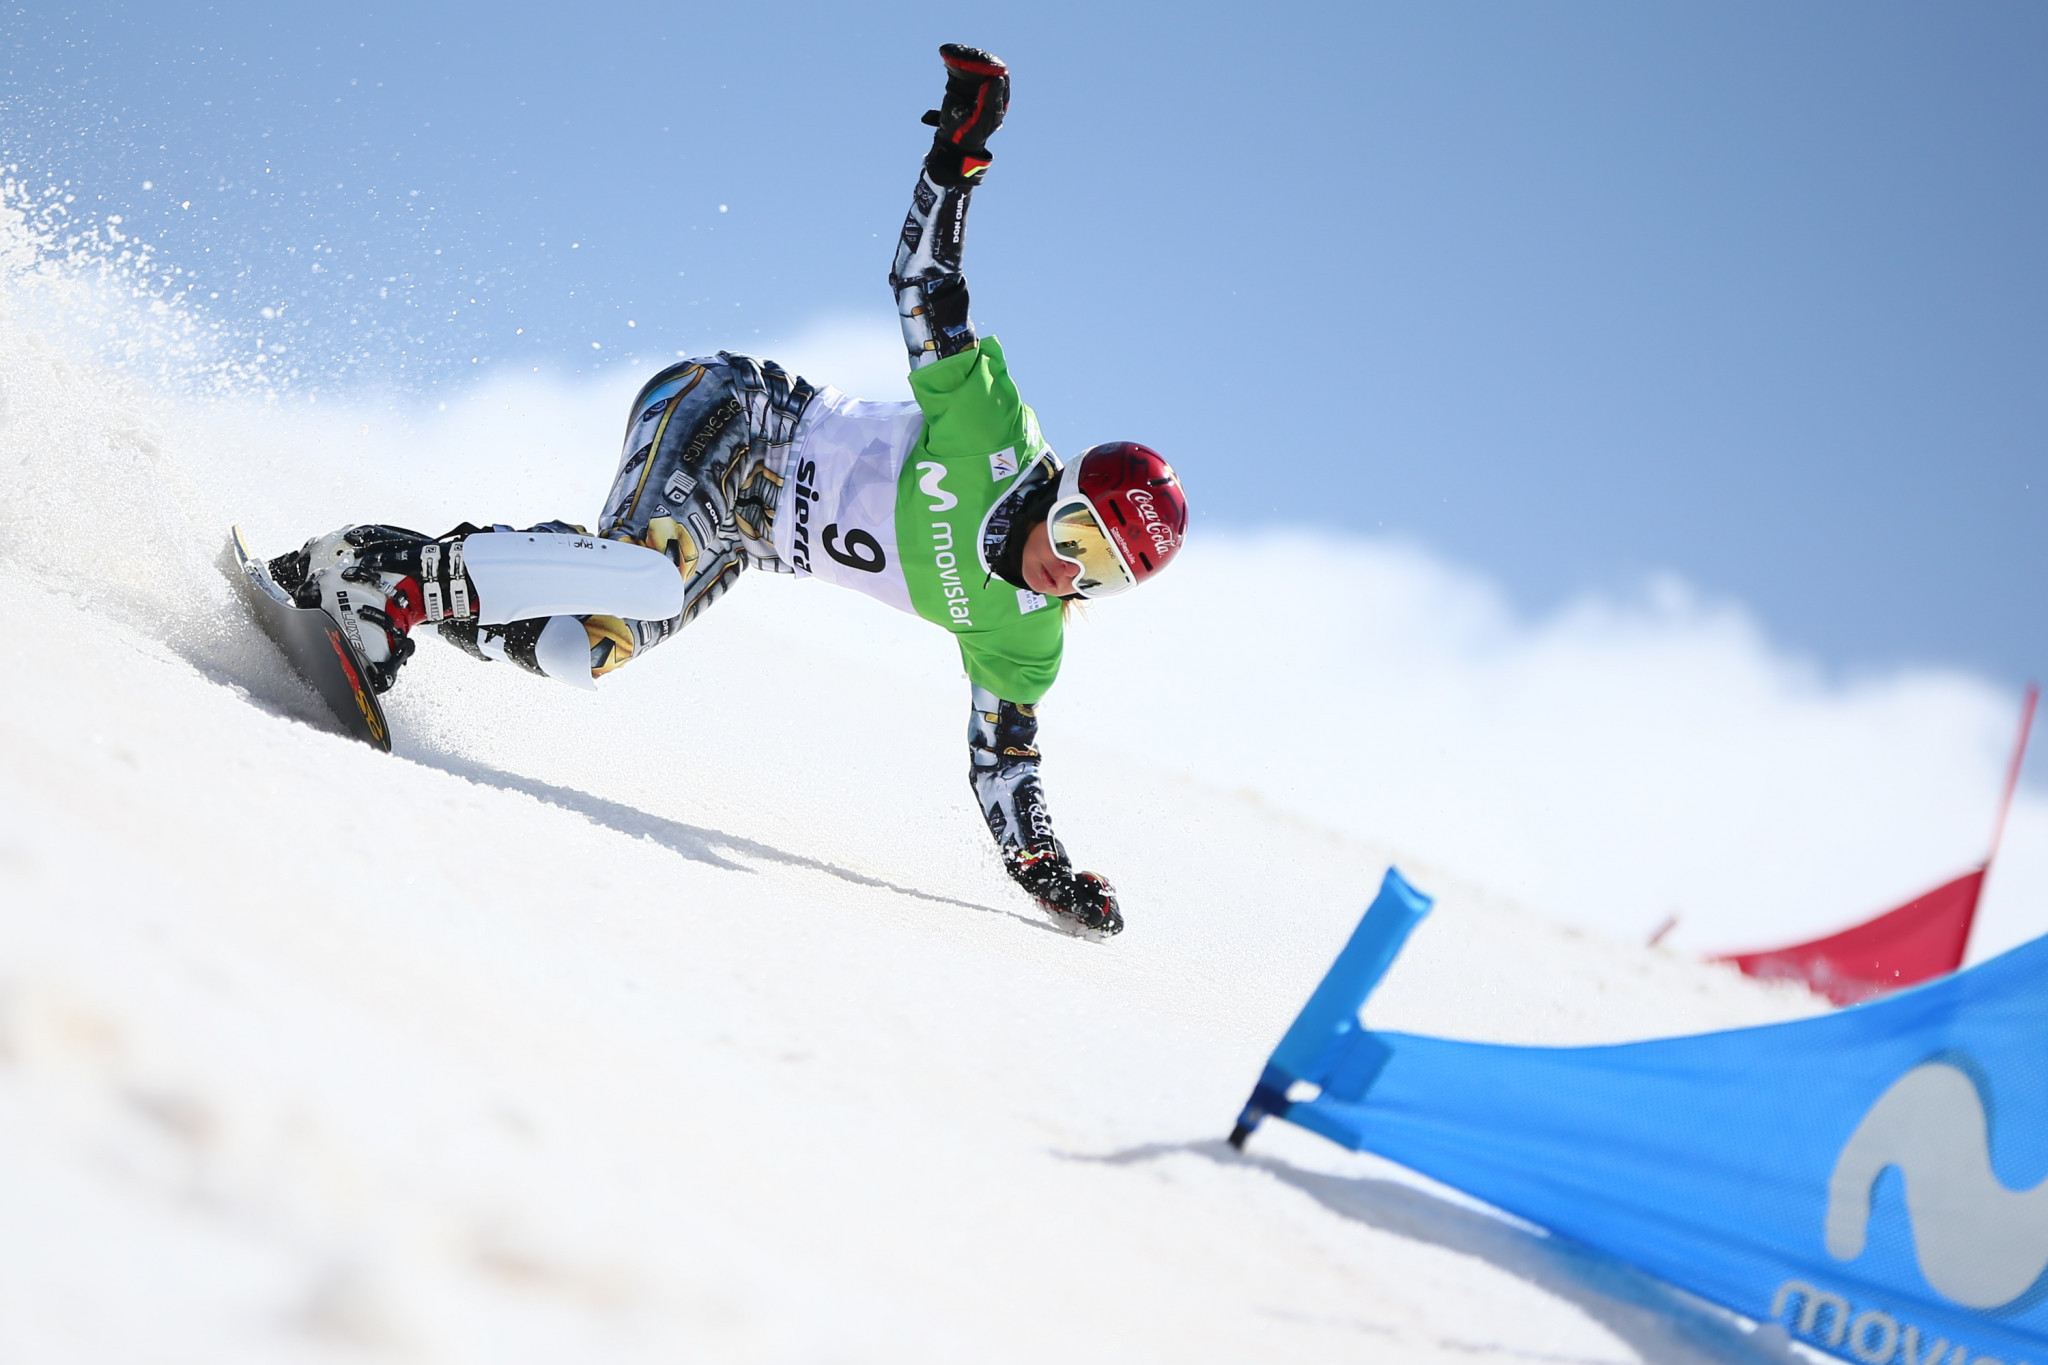 Snowboard World Cup in Bankso allows final warm-up for Pyeongchang